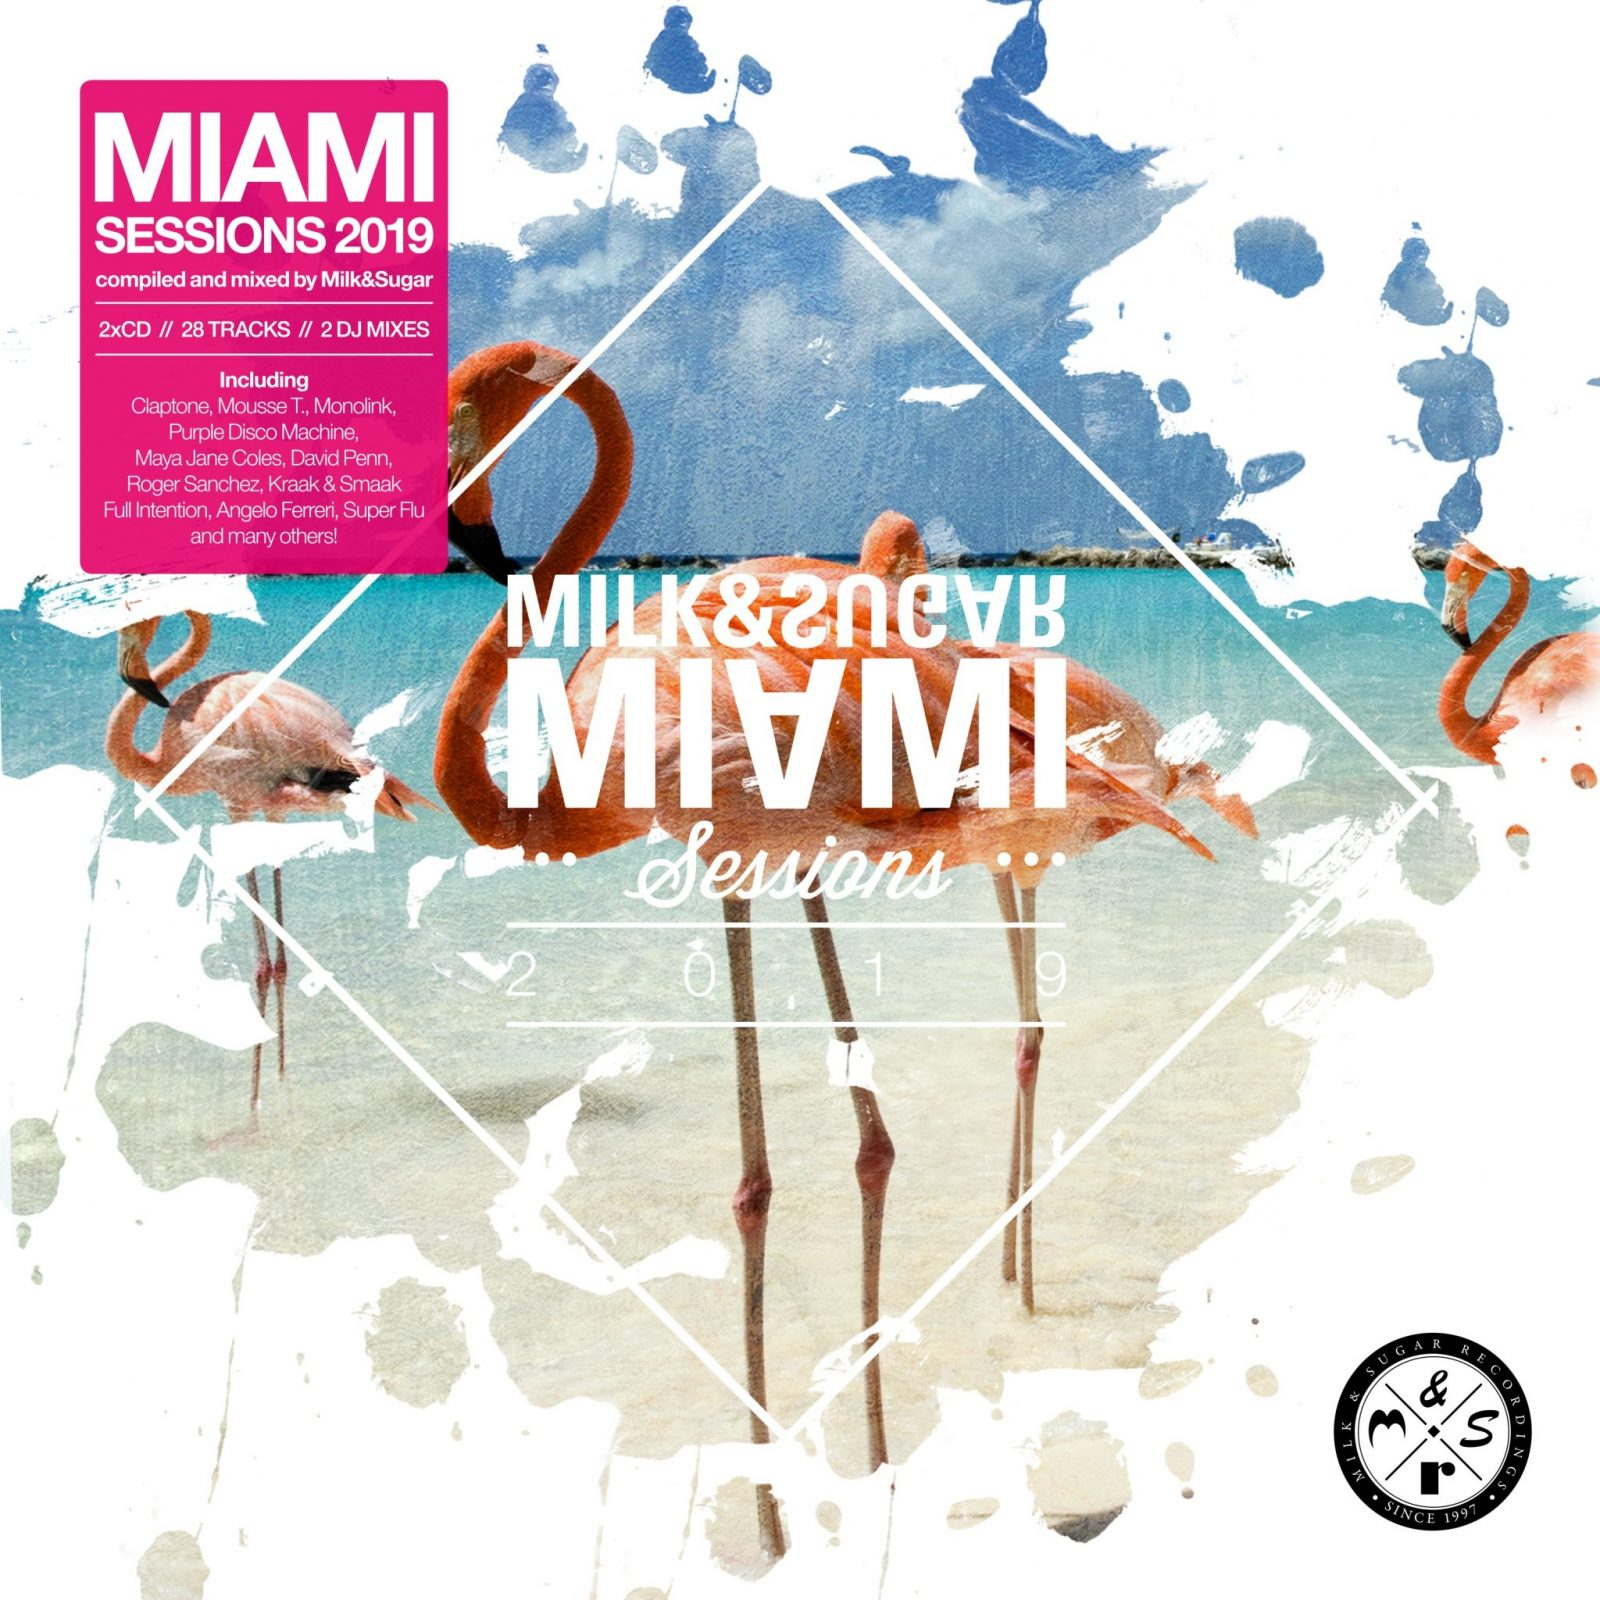 MIAMI SESSIONS 2019  - Compiled and Mixed by Milk & Sugar